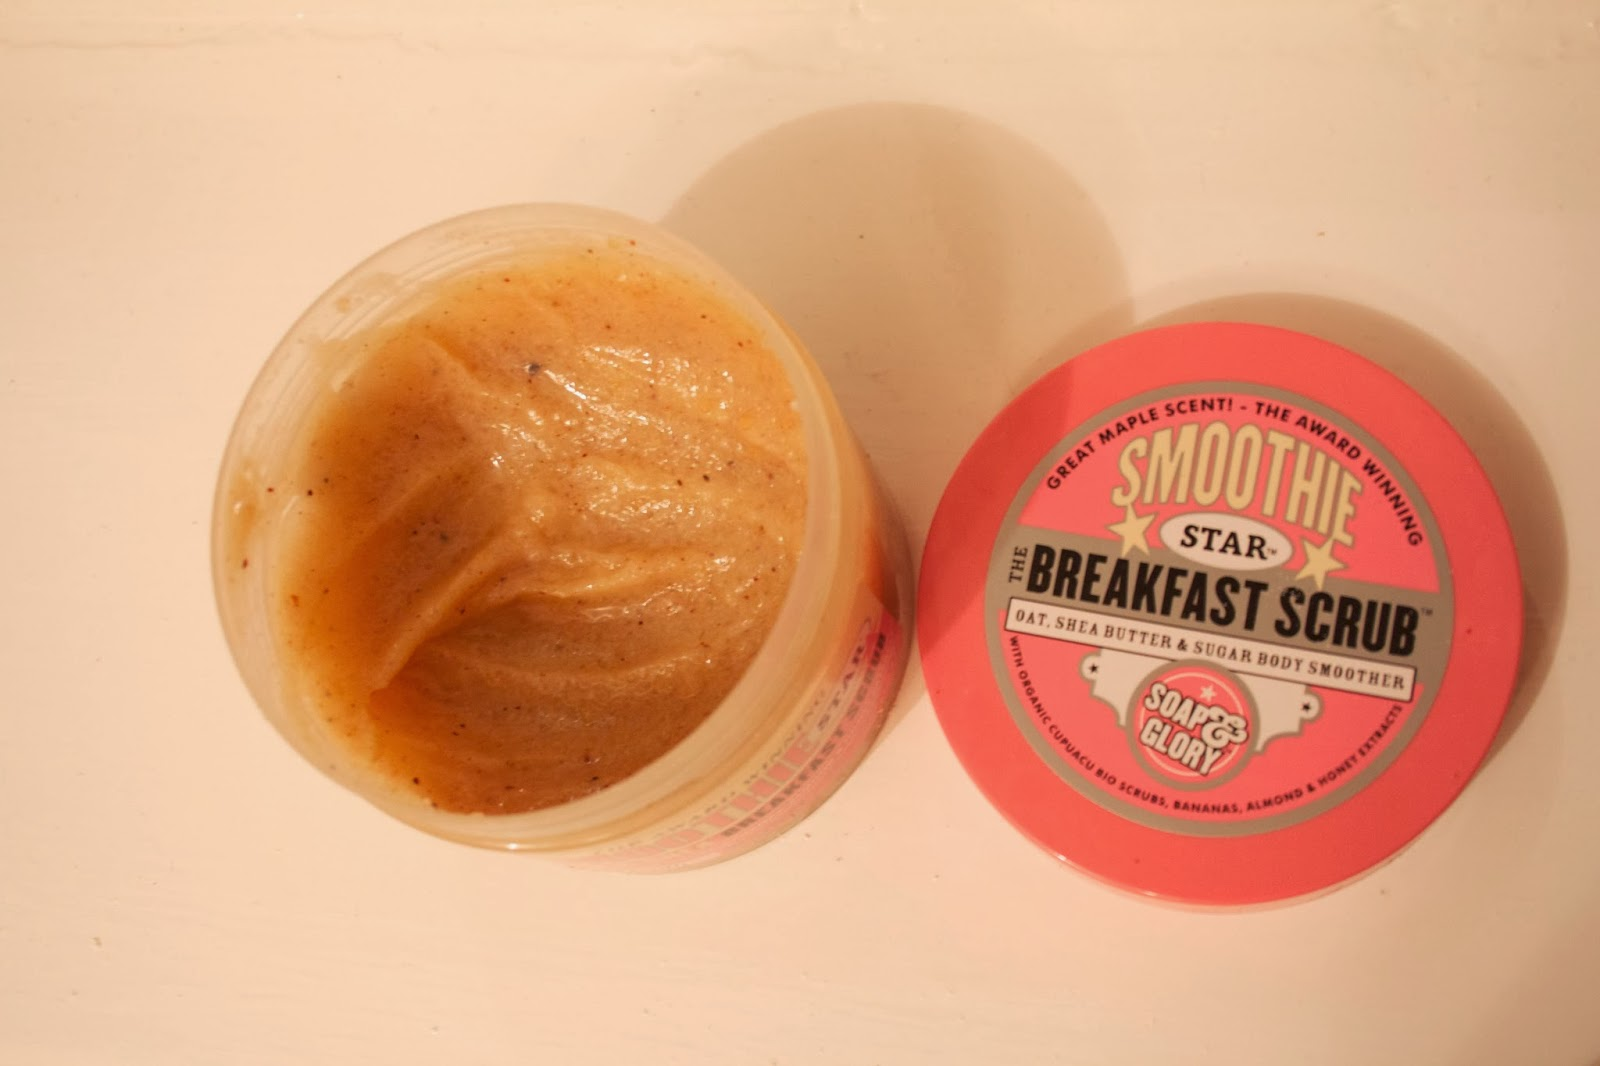 Soap & Glory The Breakfast Scrub